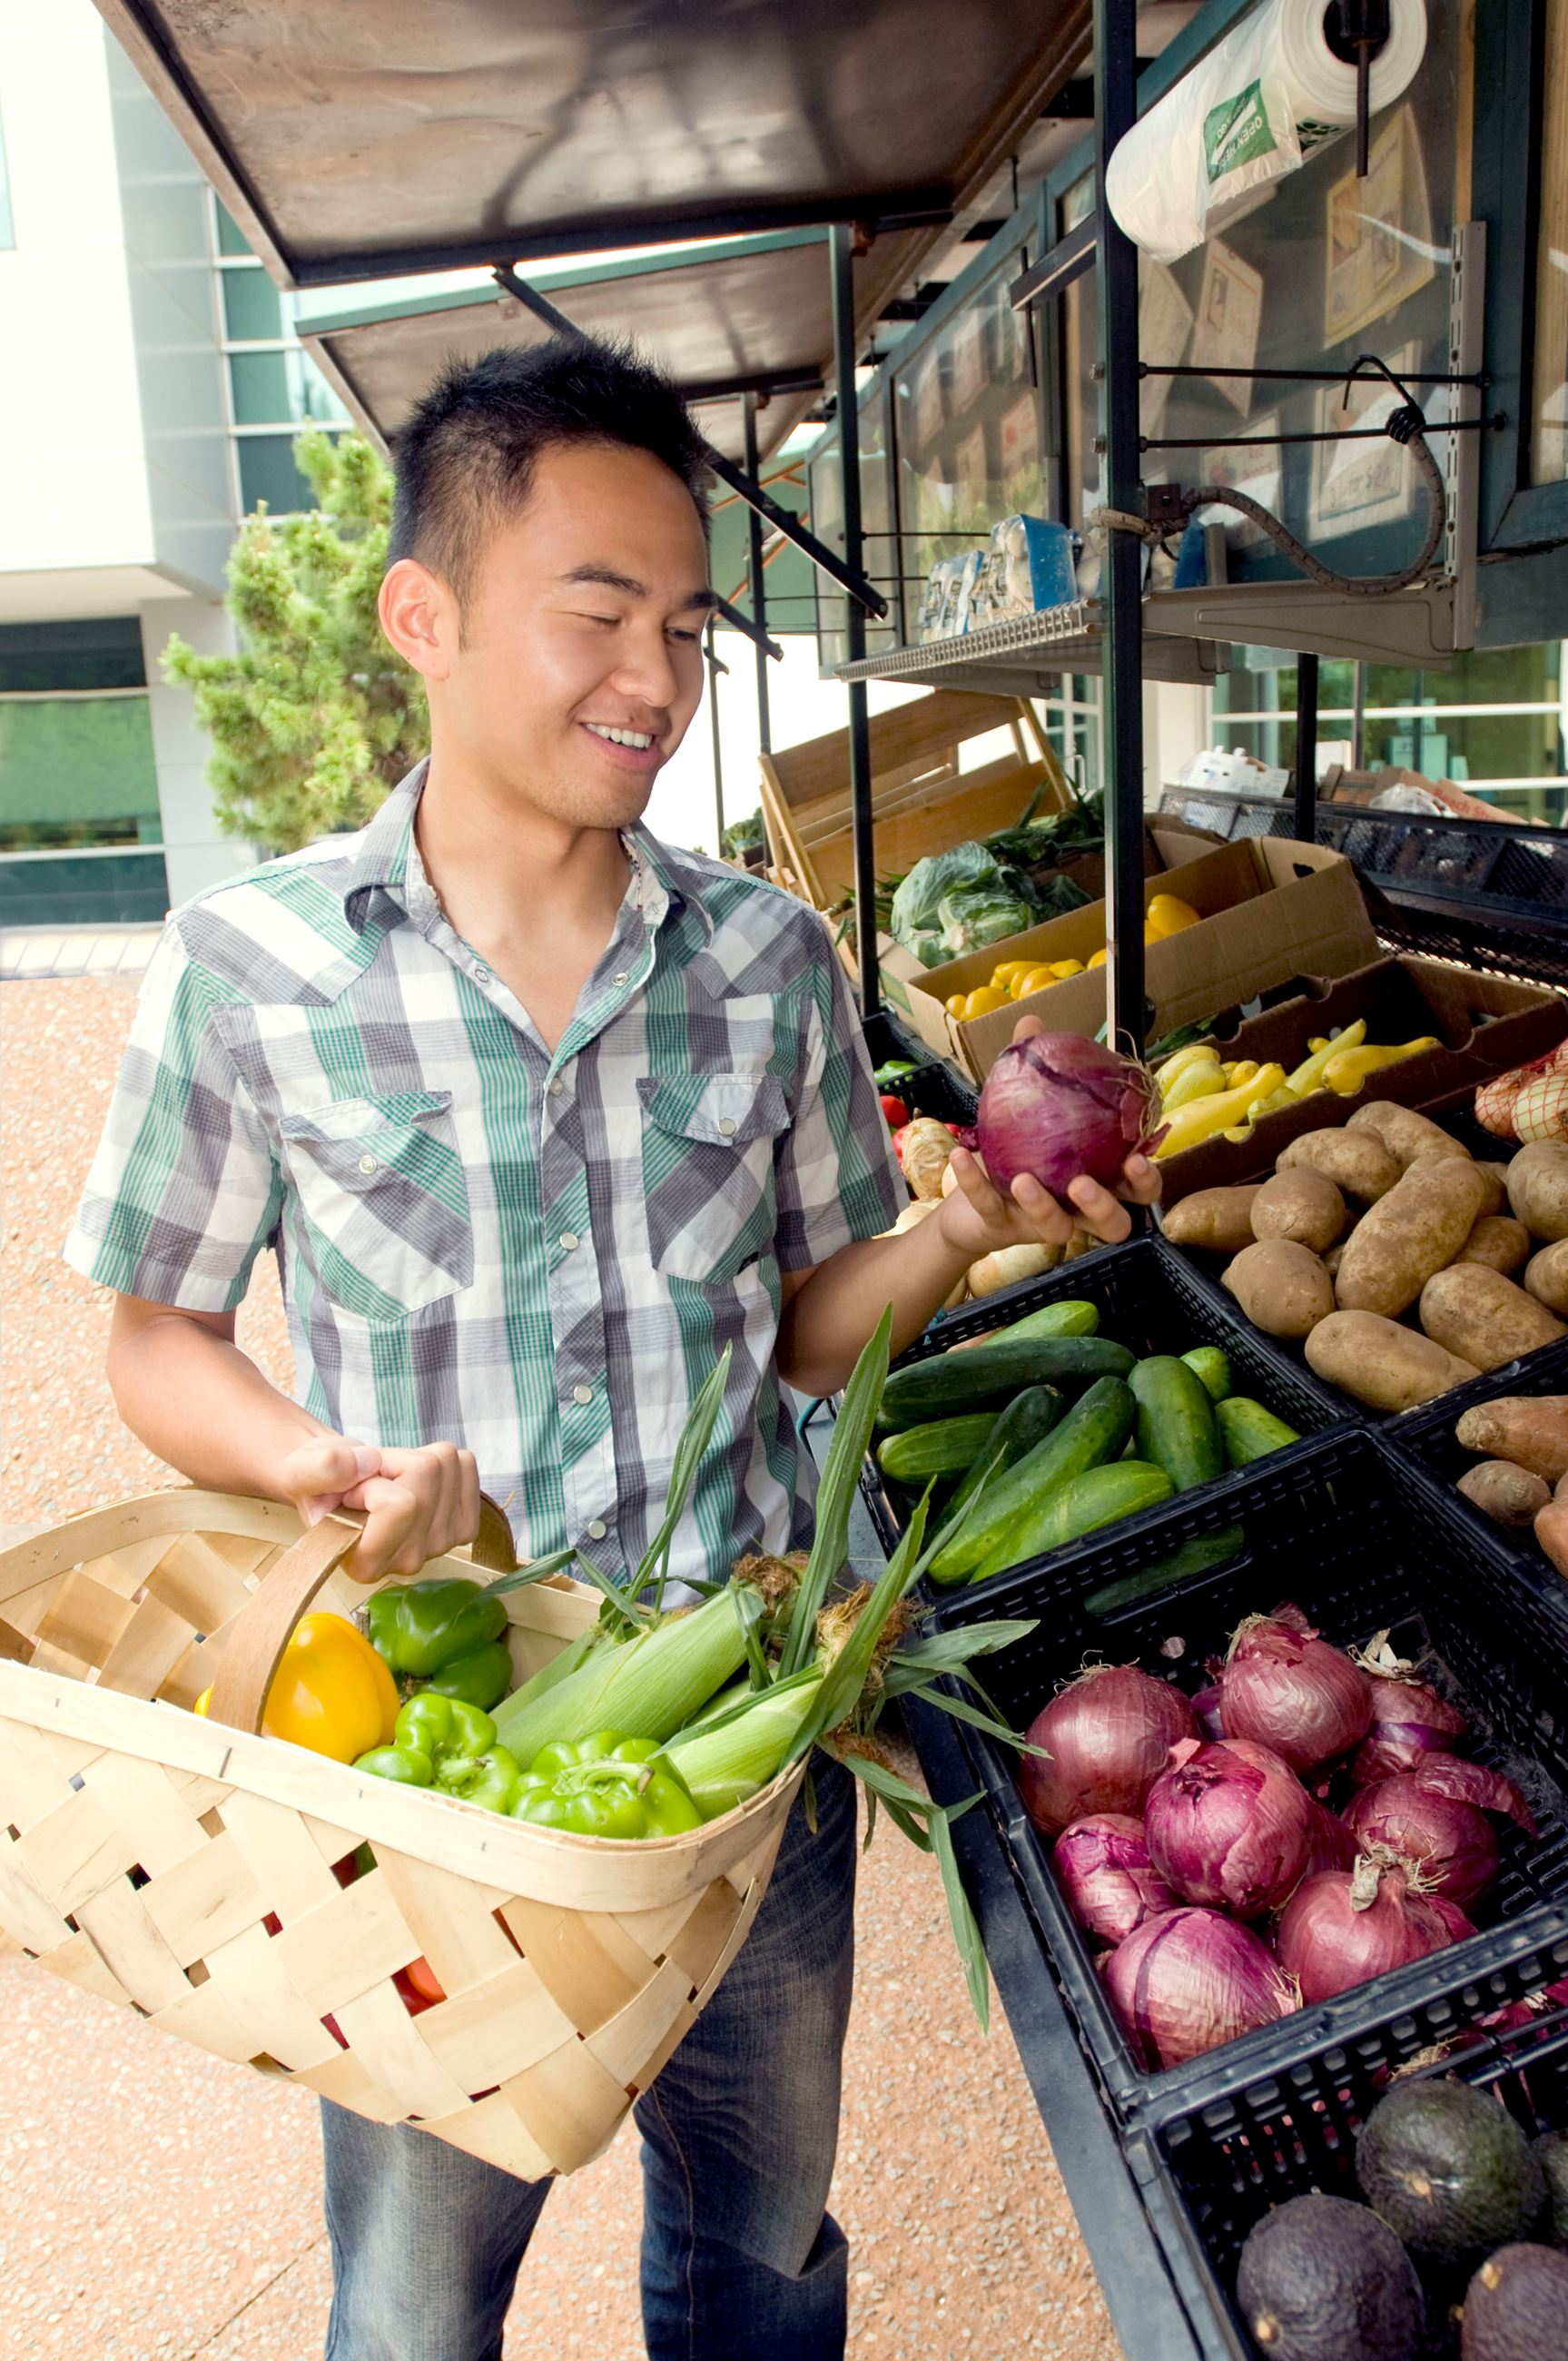 Man Shopping at Farmers Market_CDC photo